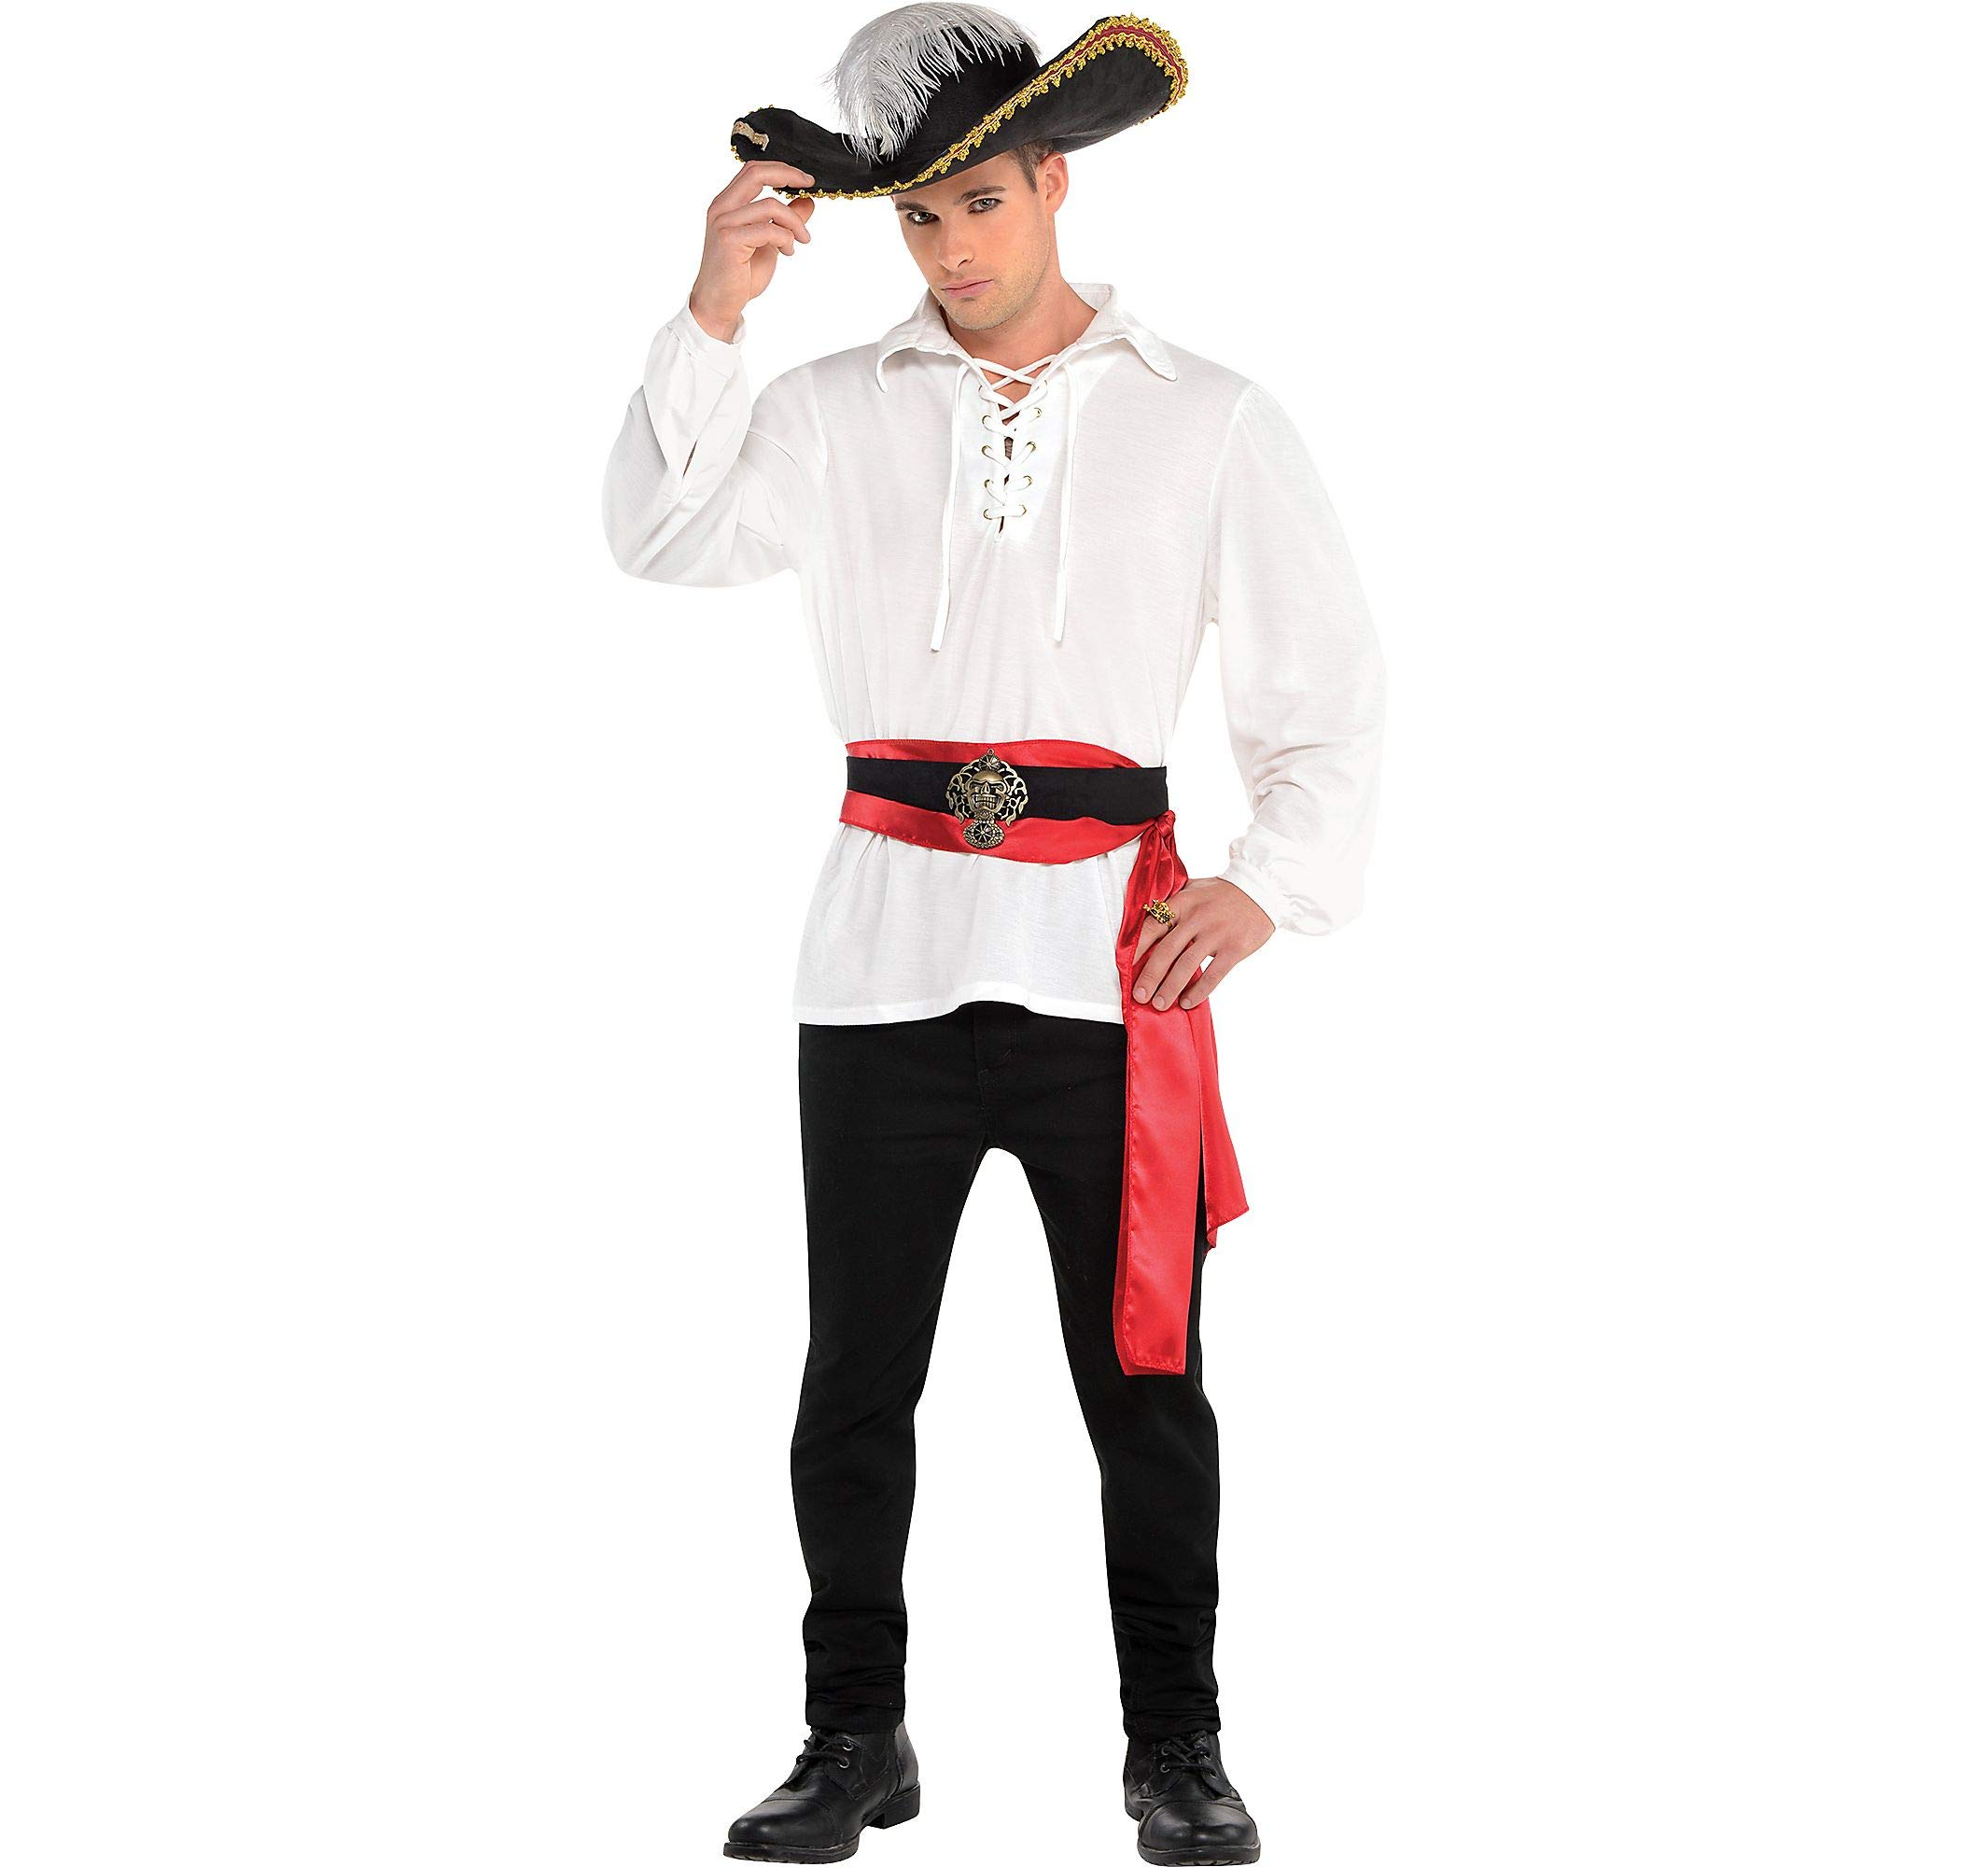 Amscan Pirate Shirt Halloween Costume Accessory for Men, White, Standard Size